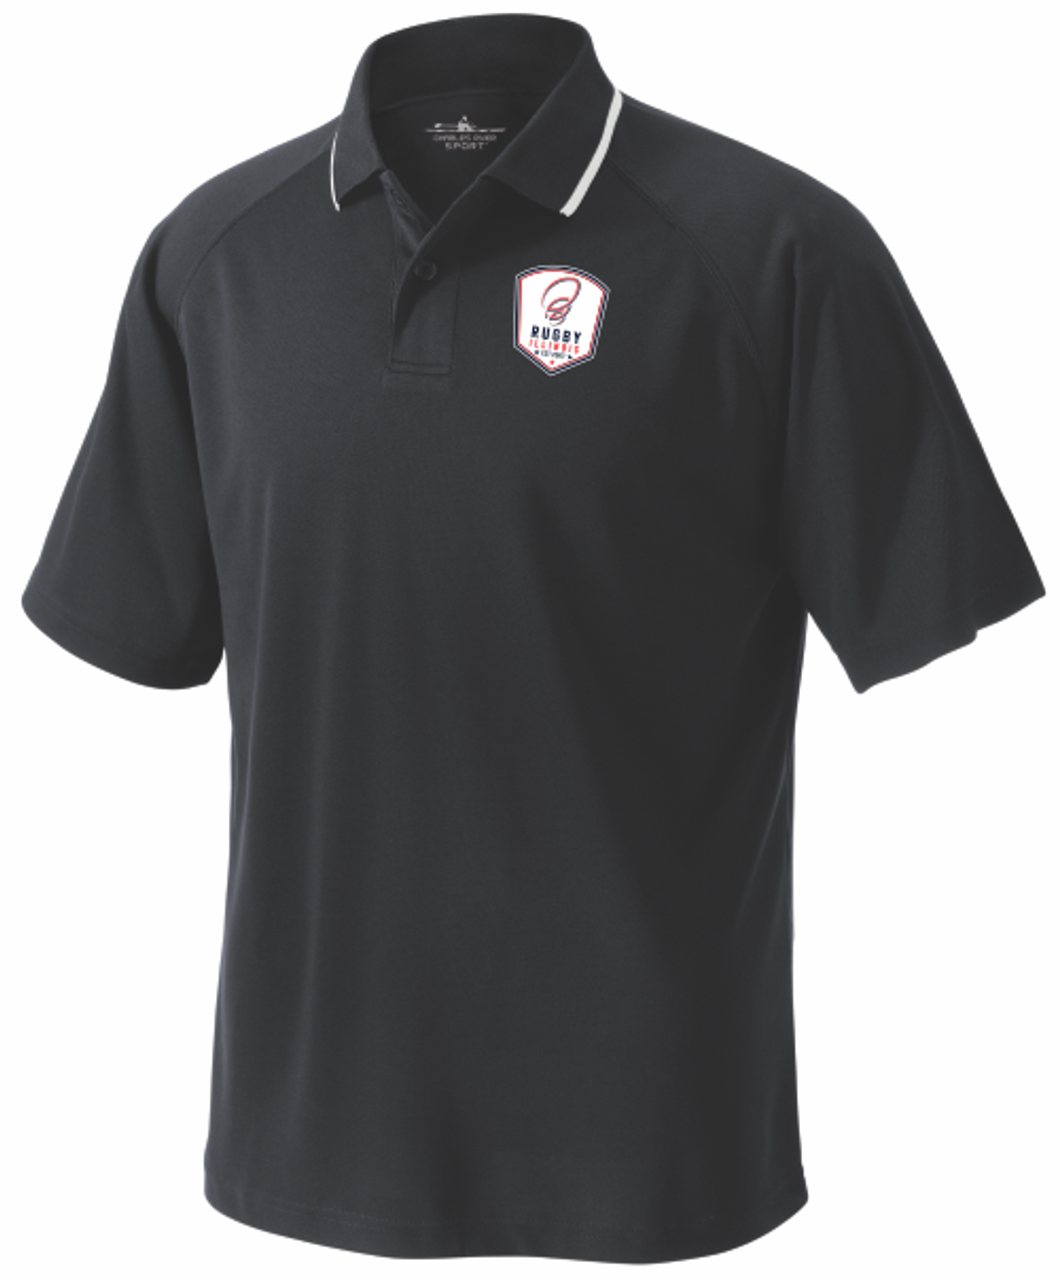 Rugby Illinois Performance Polo, Black